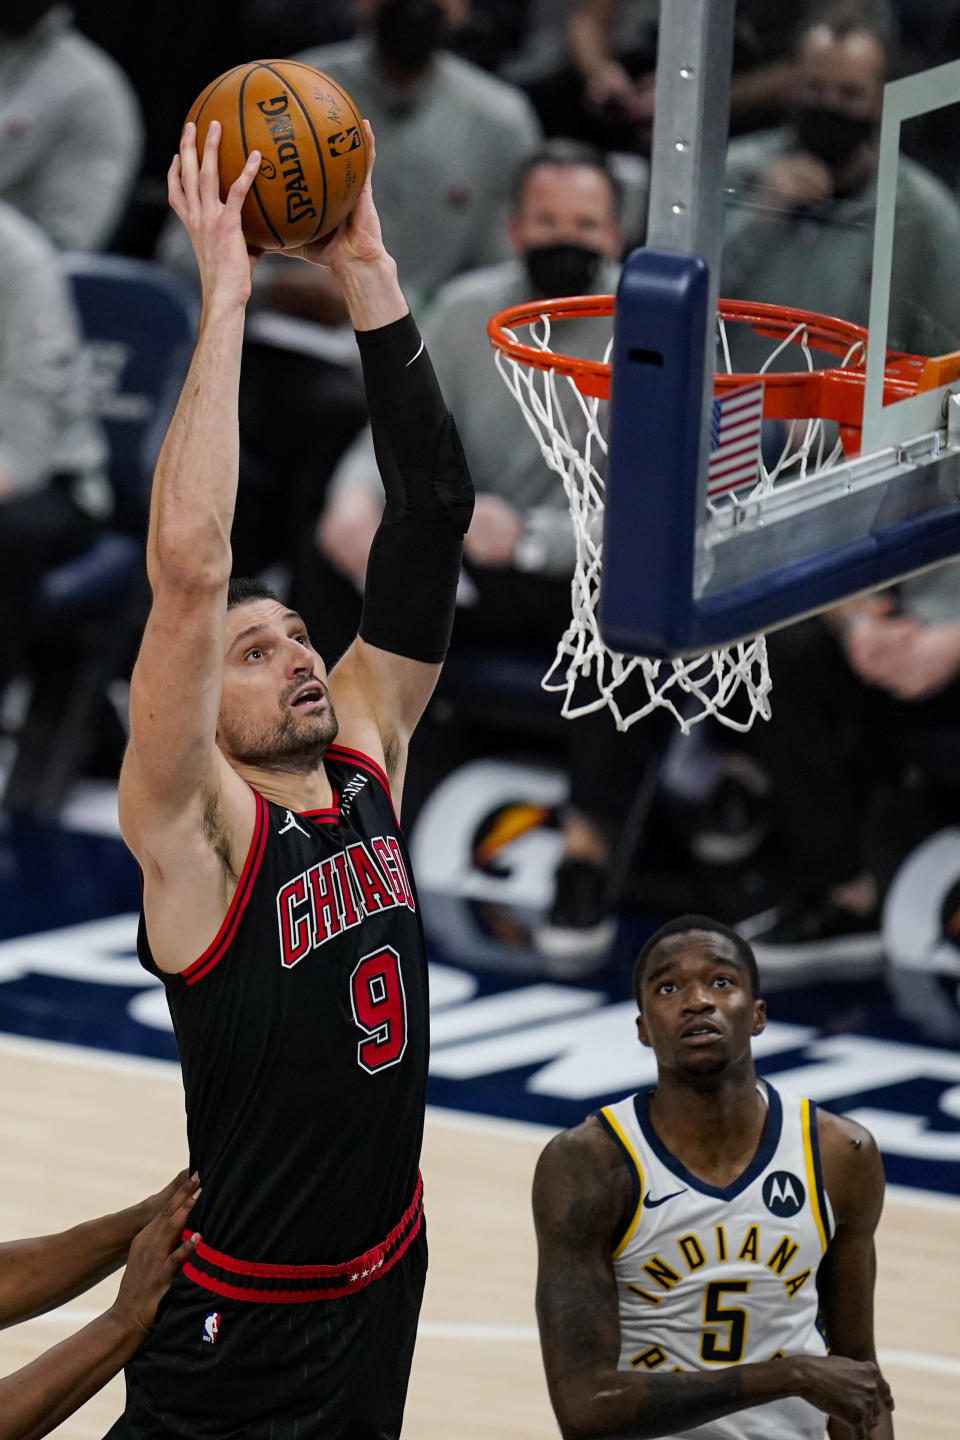 Chicago Bulls center Nikola Vucevic (9) dunks over Indiana Pacers guard Edmond Sumner (5) during the second half of an NBA basketball game in Indianapolis, Tuesday, April 6, 2021. (AP Photo/Michael Conroy)